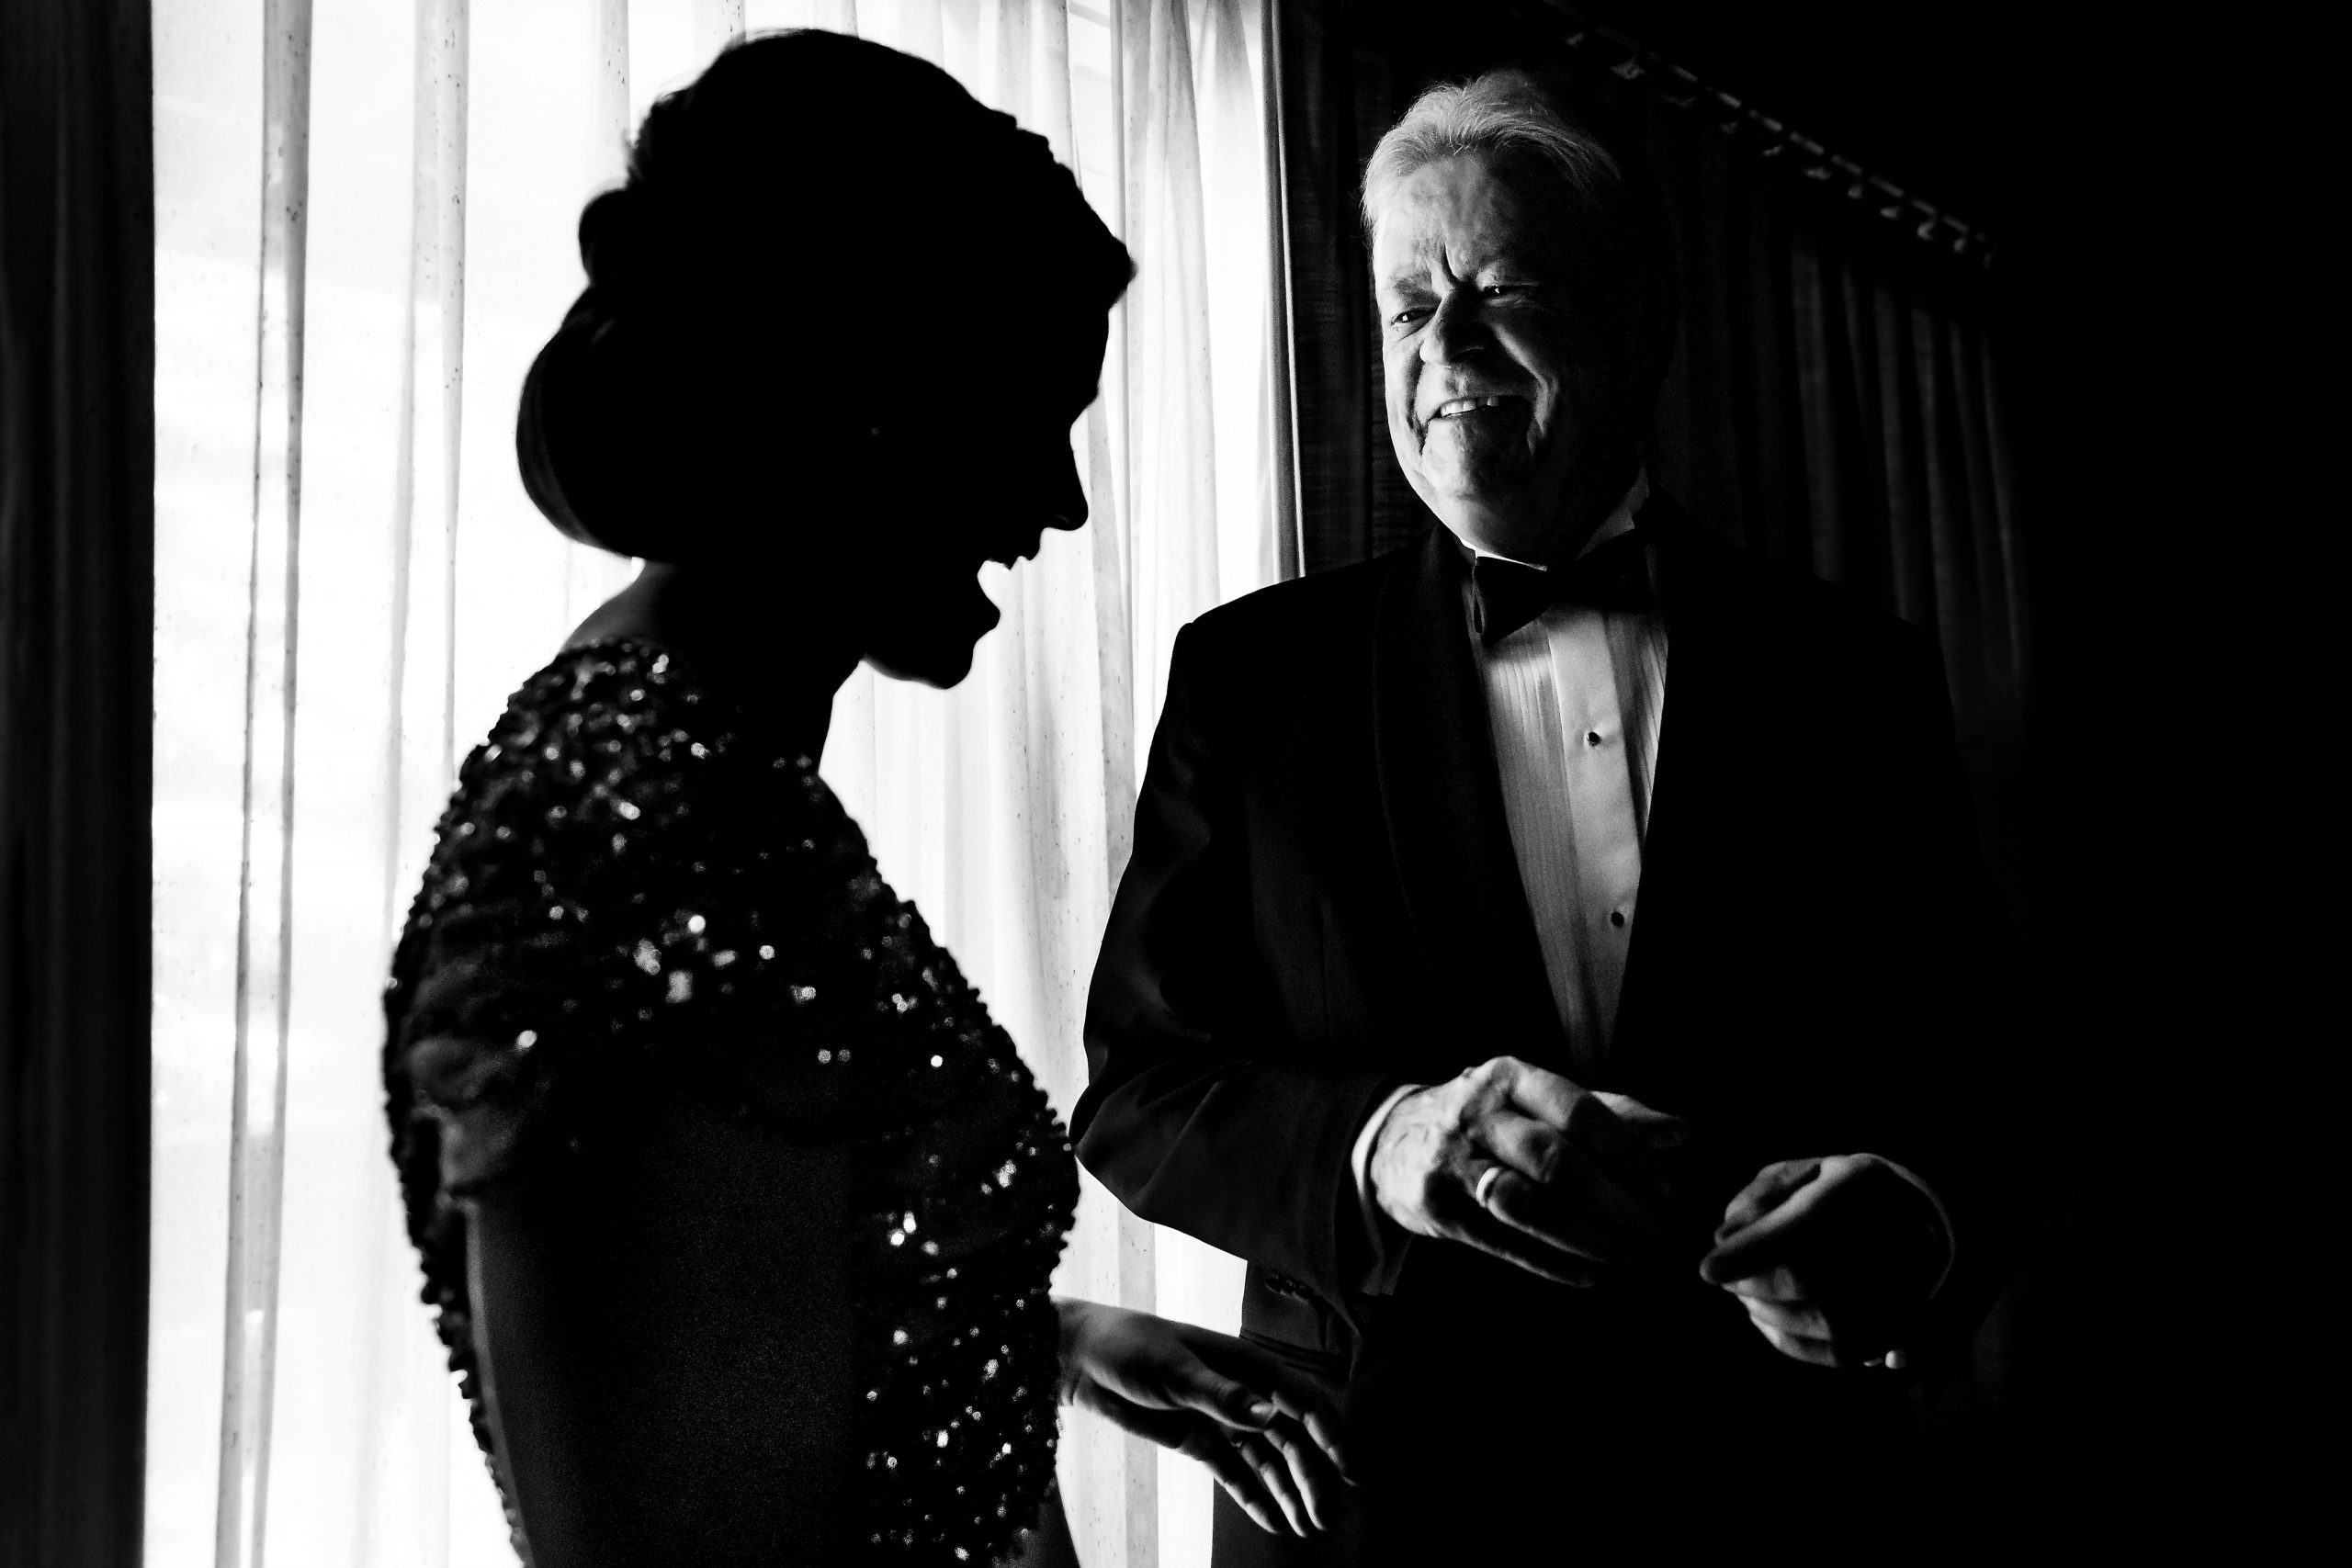 A proud father talks with the bride who is silhouetted by the light outside of the room.